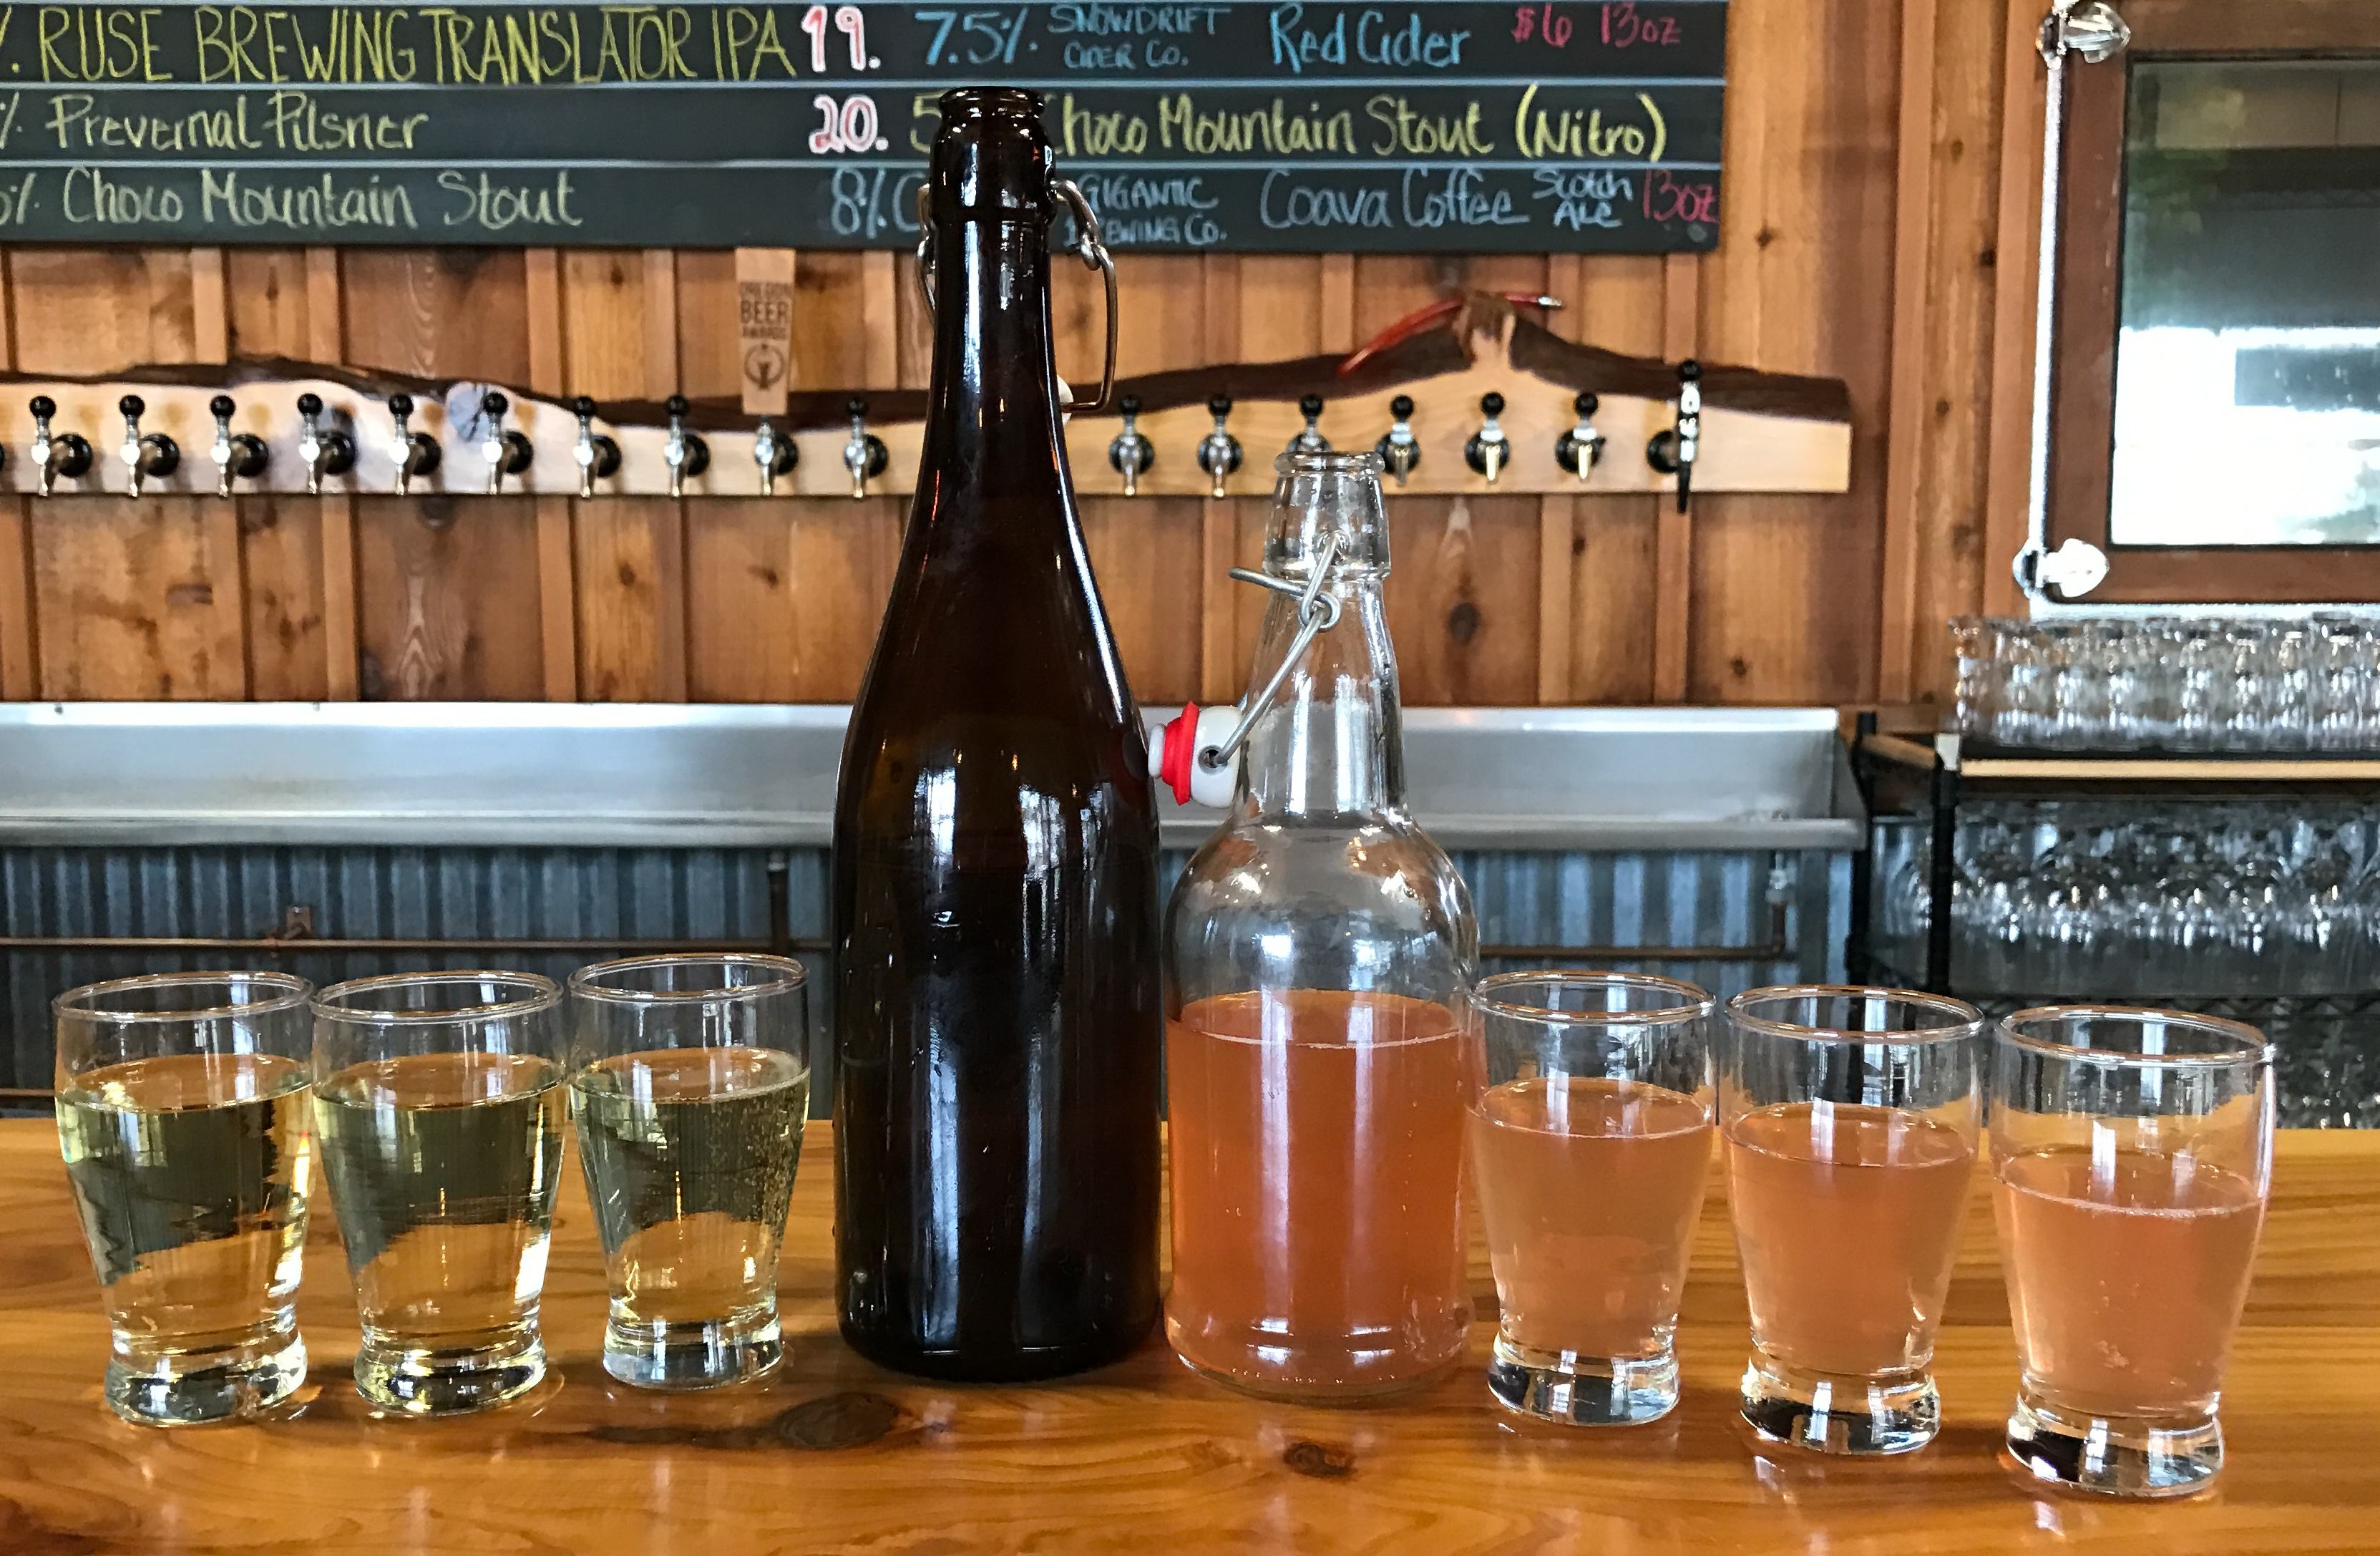 Joe Millea and Susan Swank Moulton Falls Cider House -- Portland Beer Podcast